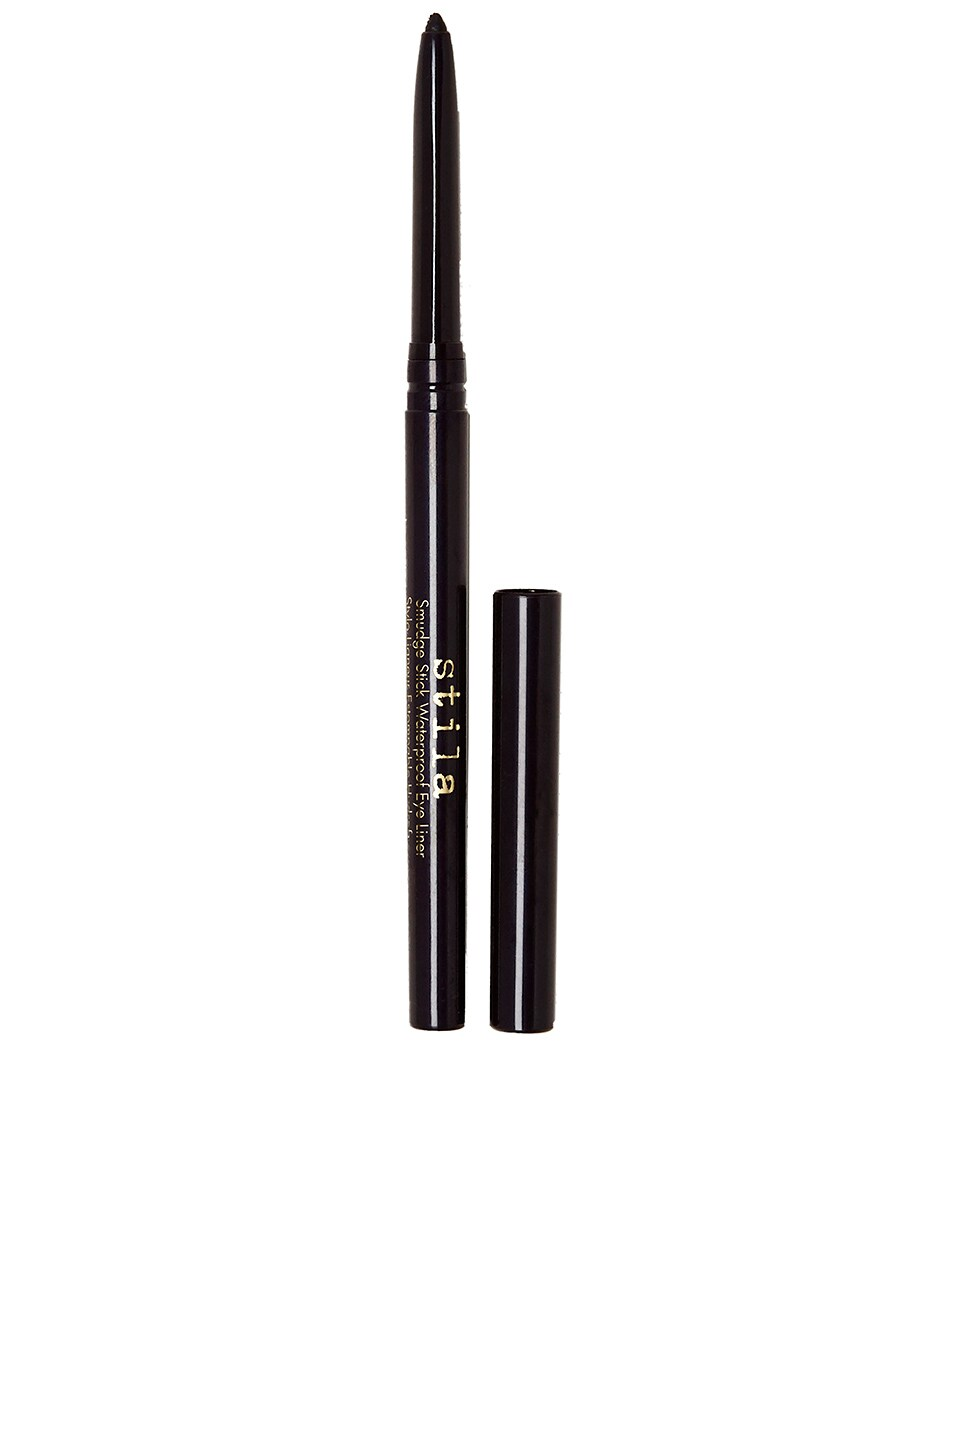 Stila EYE-LINER SMUDGE STICK